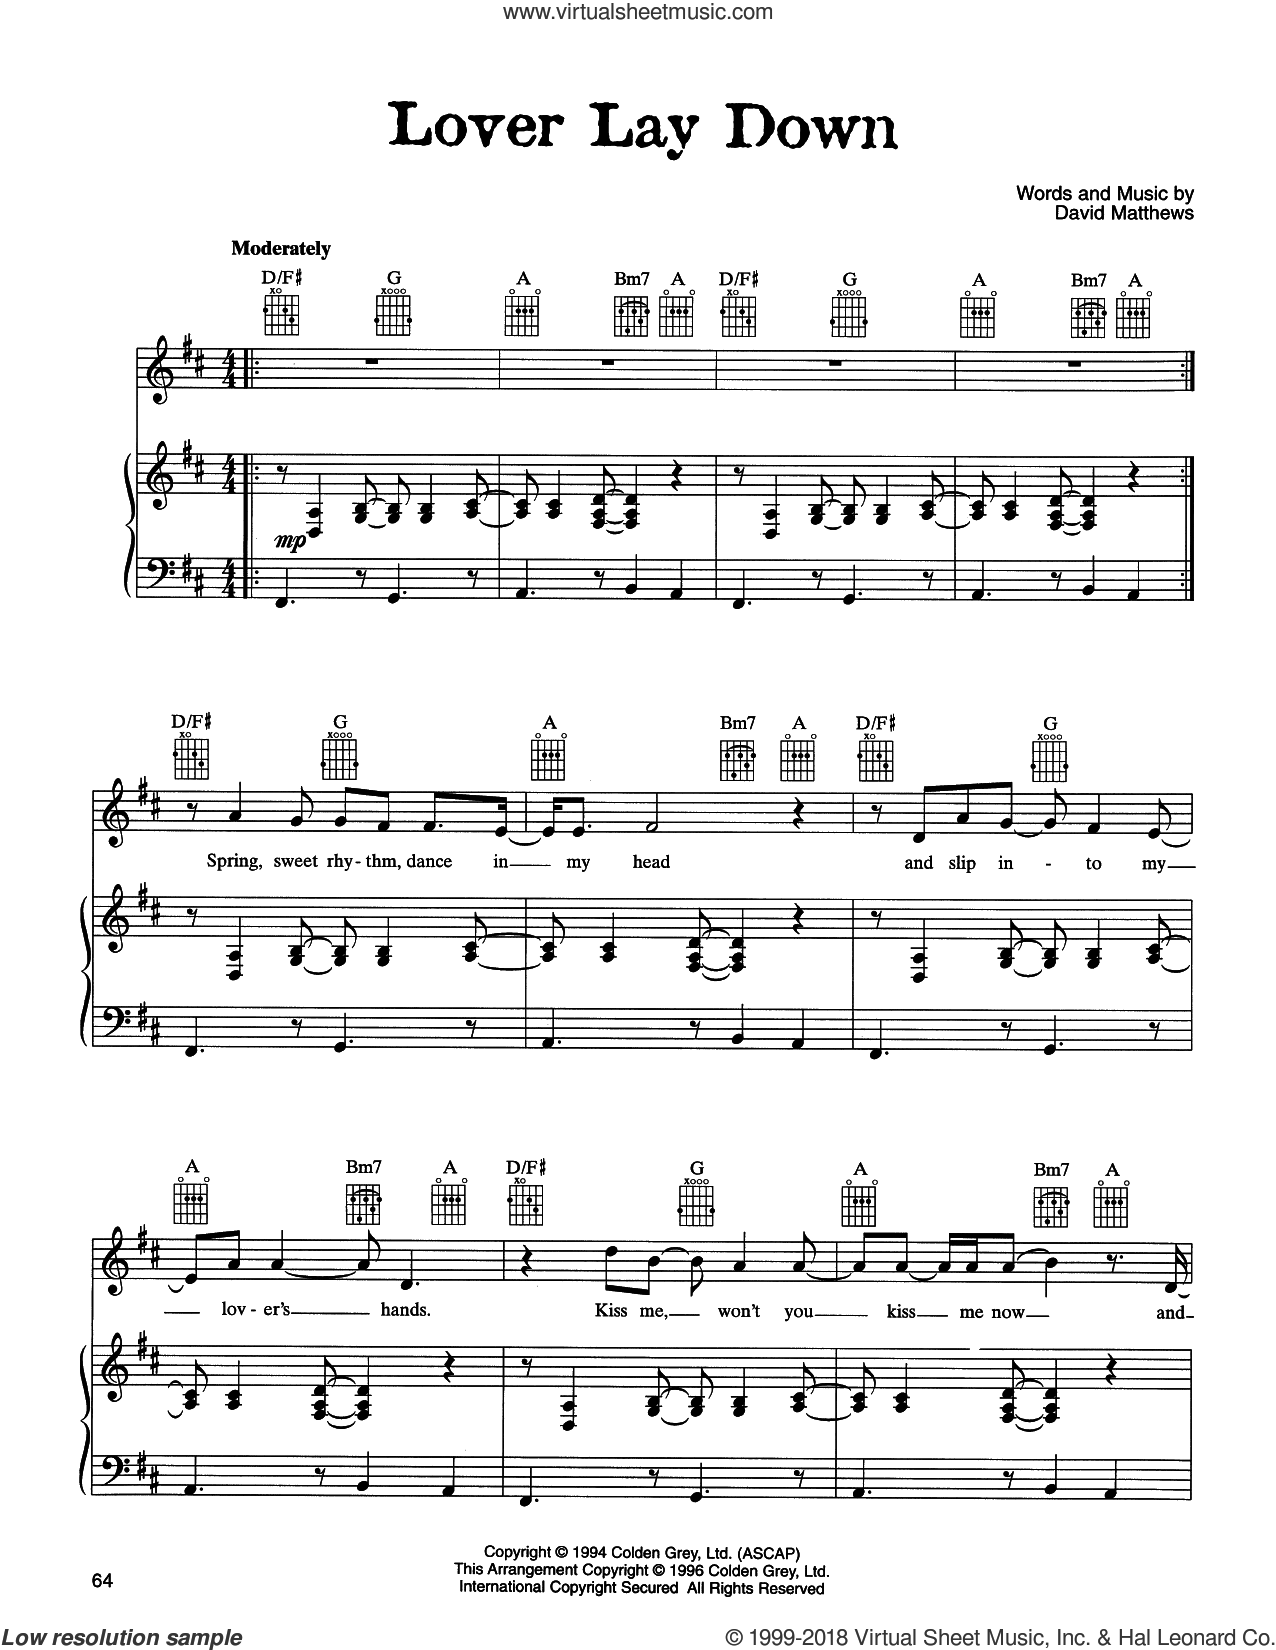 Lover Lay Down sheet music for voice, piano or guitar by Dave Matthews Band. Score Image Preview.